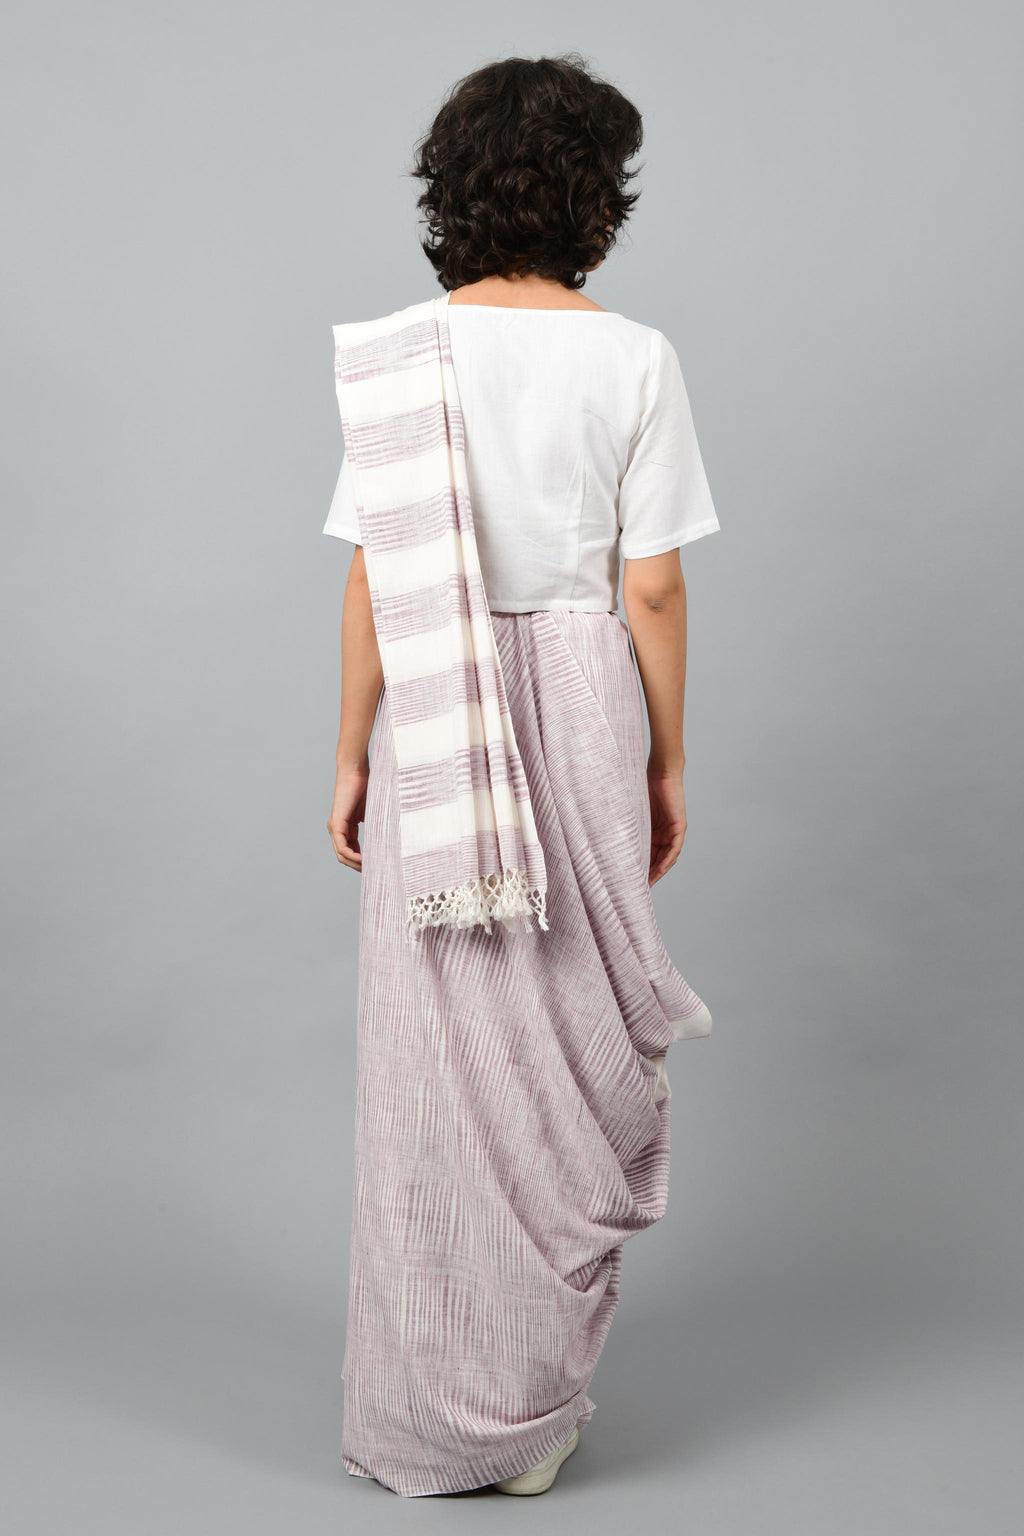 Back pose of a female womenswear fashion model draped in a purple & white space dyed homespun and handwoven cotton saree by Cotton Rack.